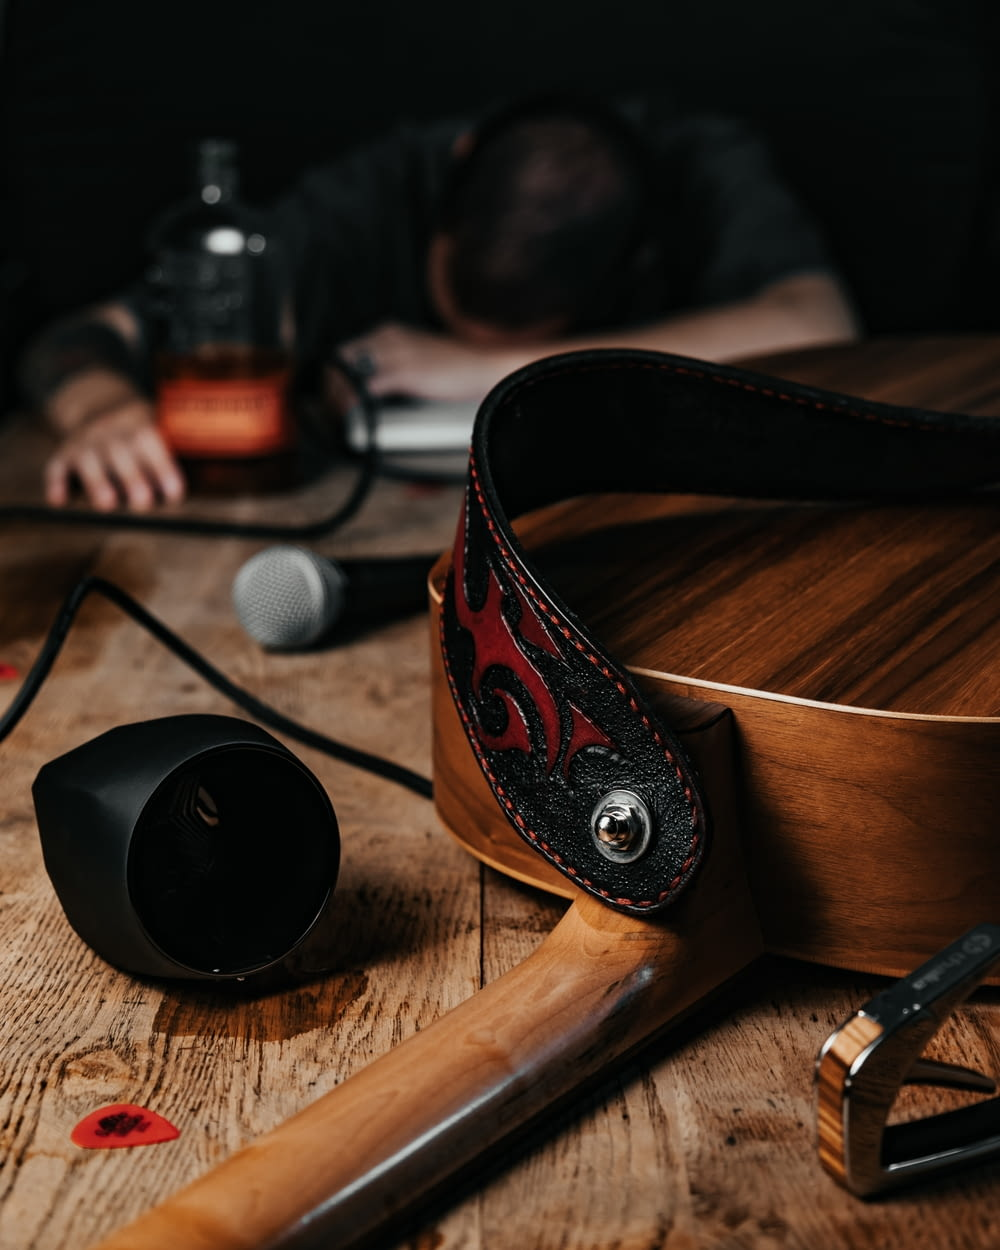 black and red headphones on brown wooden table